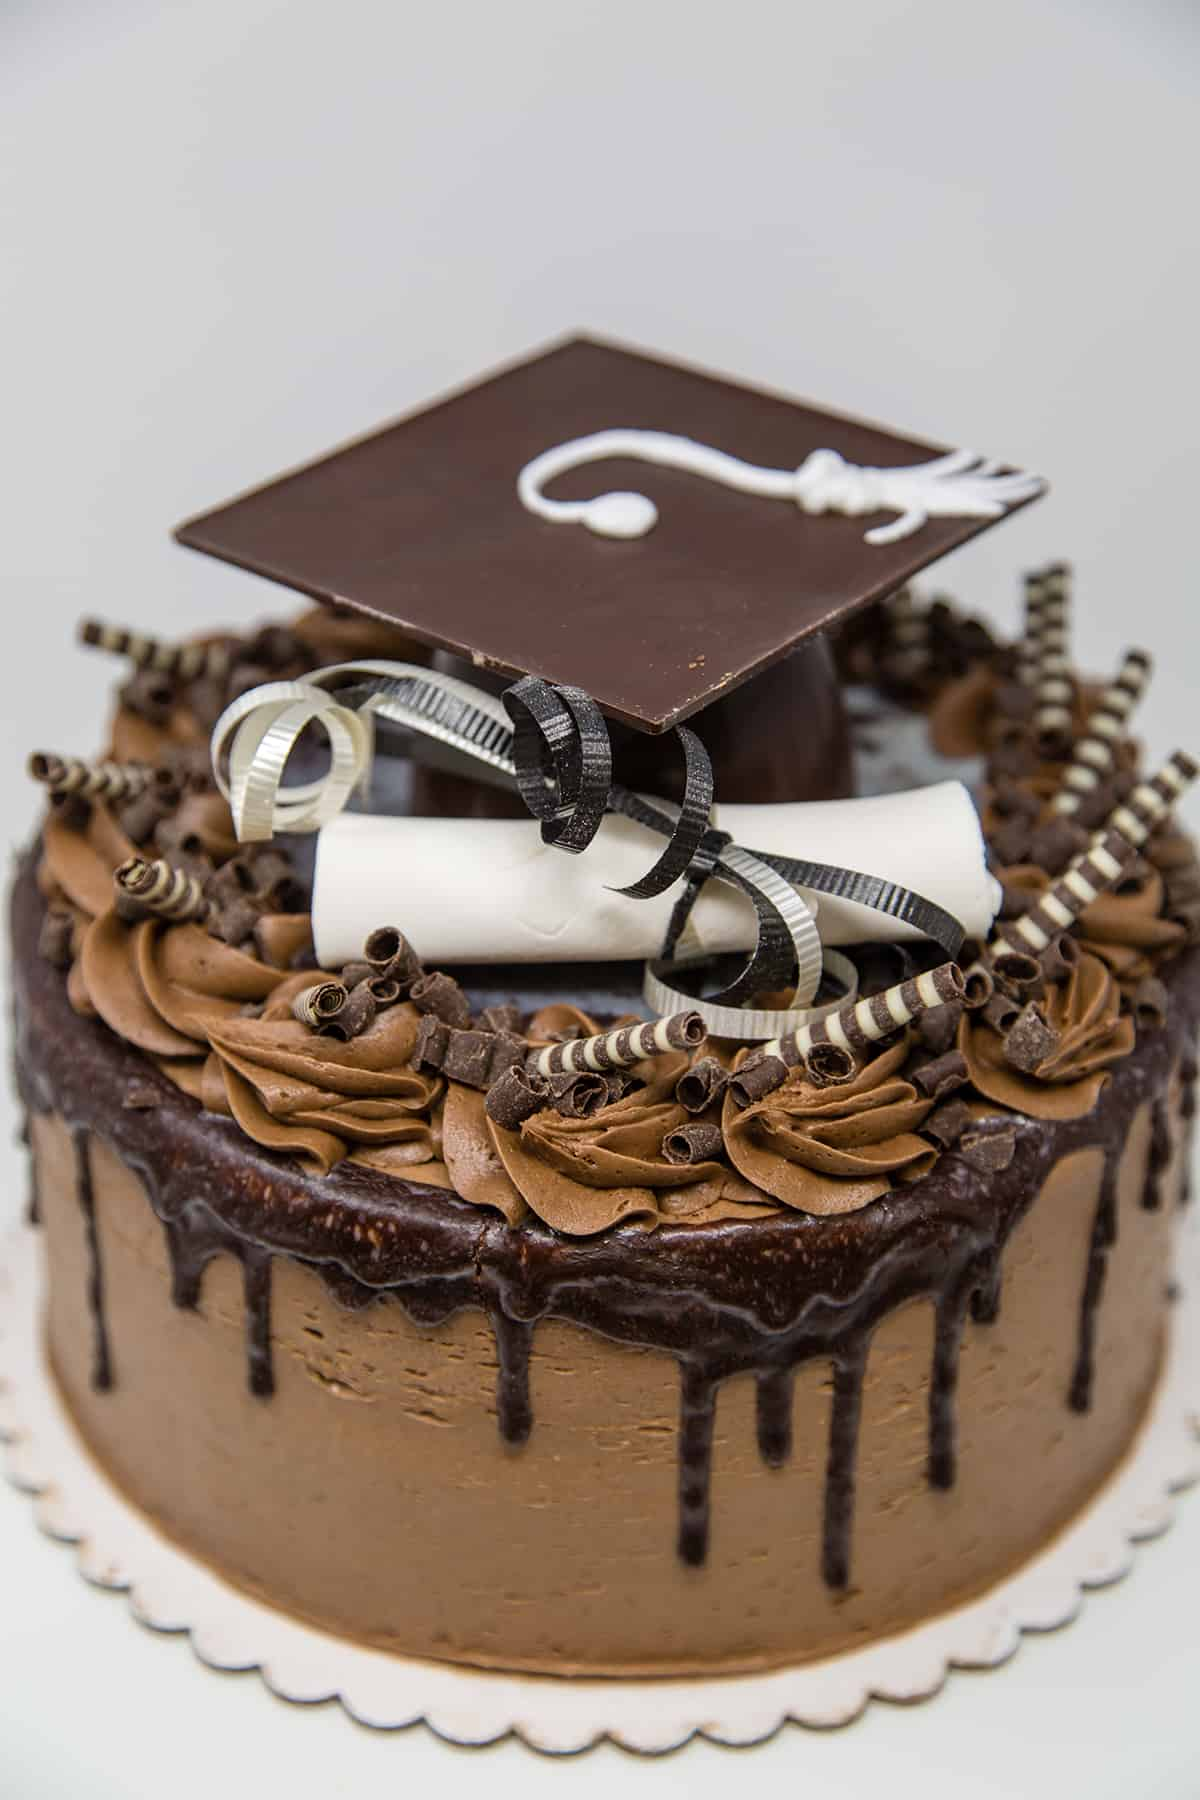 round cake covered in chocolate ganache with fondant diploma and chocolate grad cap